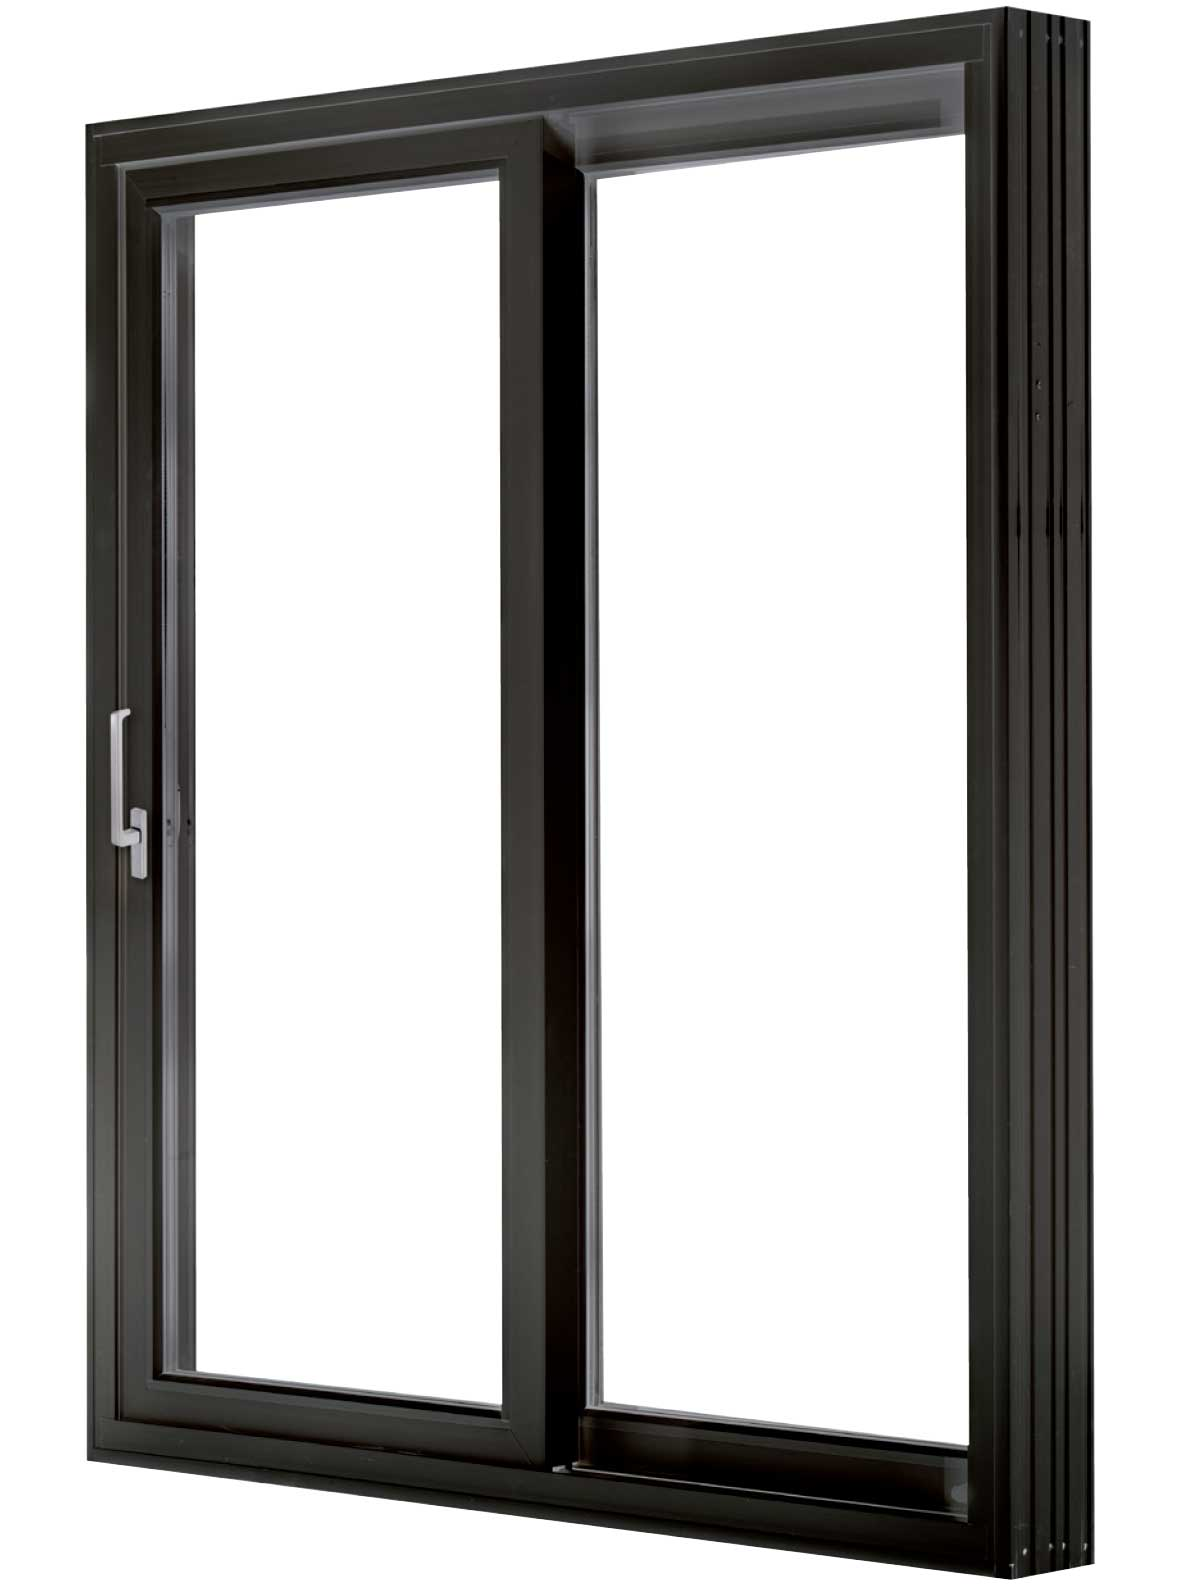 Porte patio orchestra Levante Coulissante + option hybride aluminium